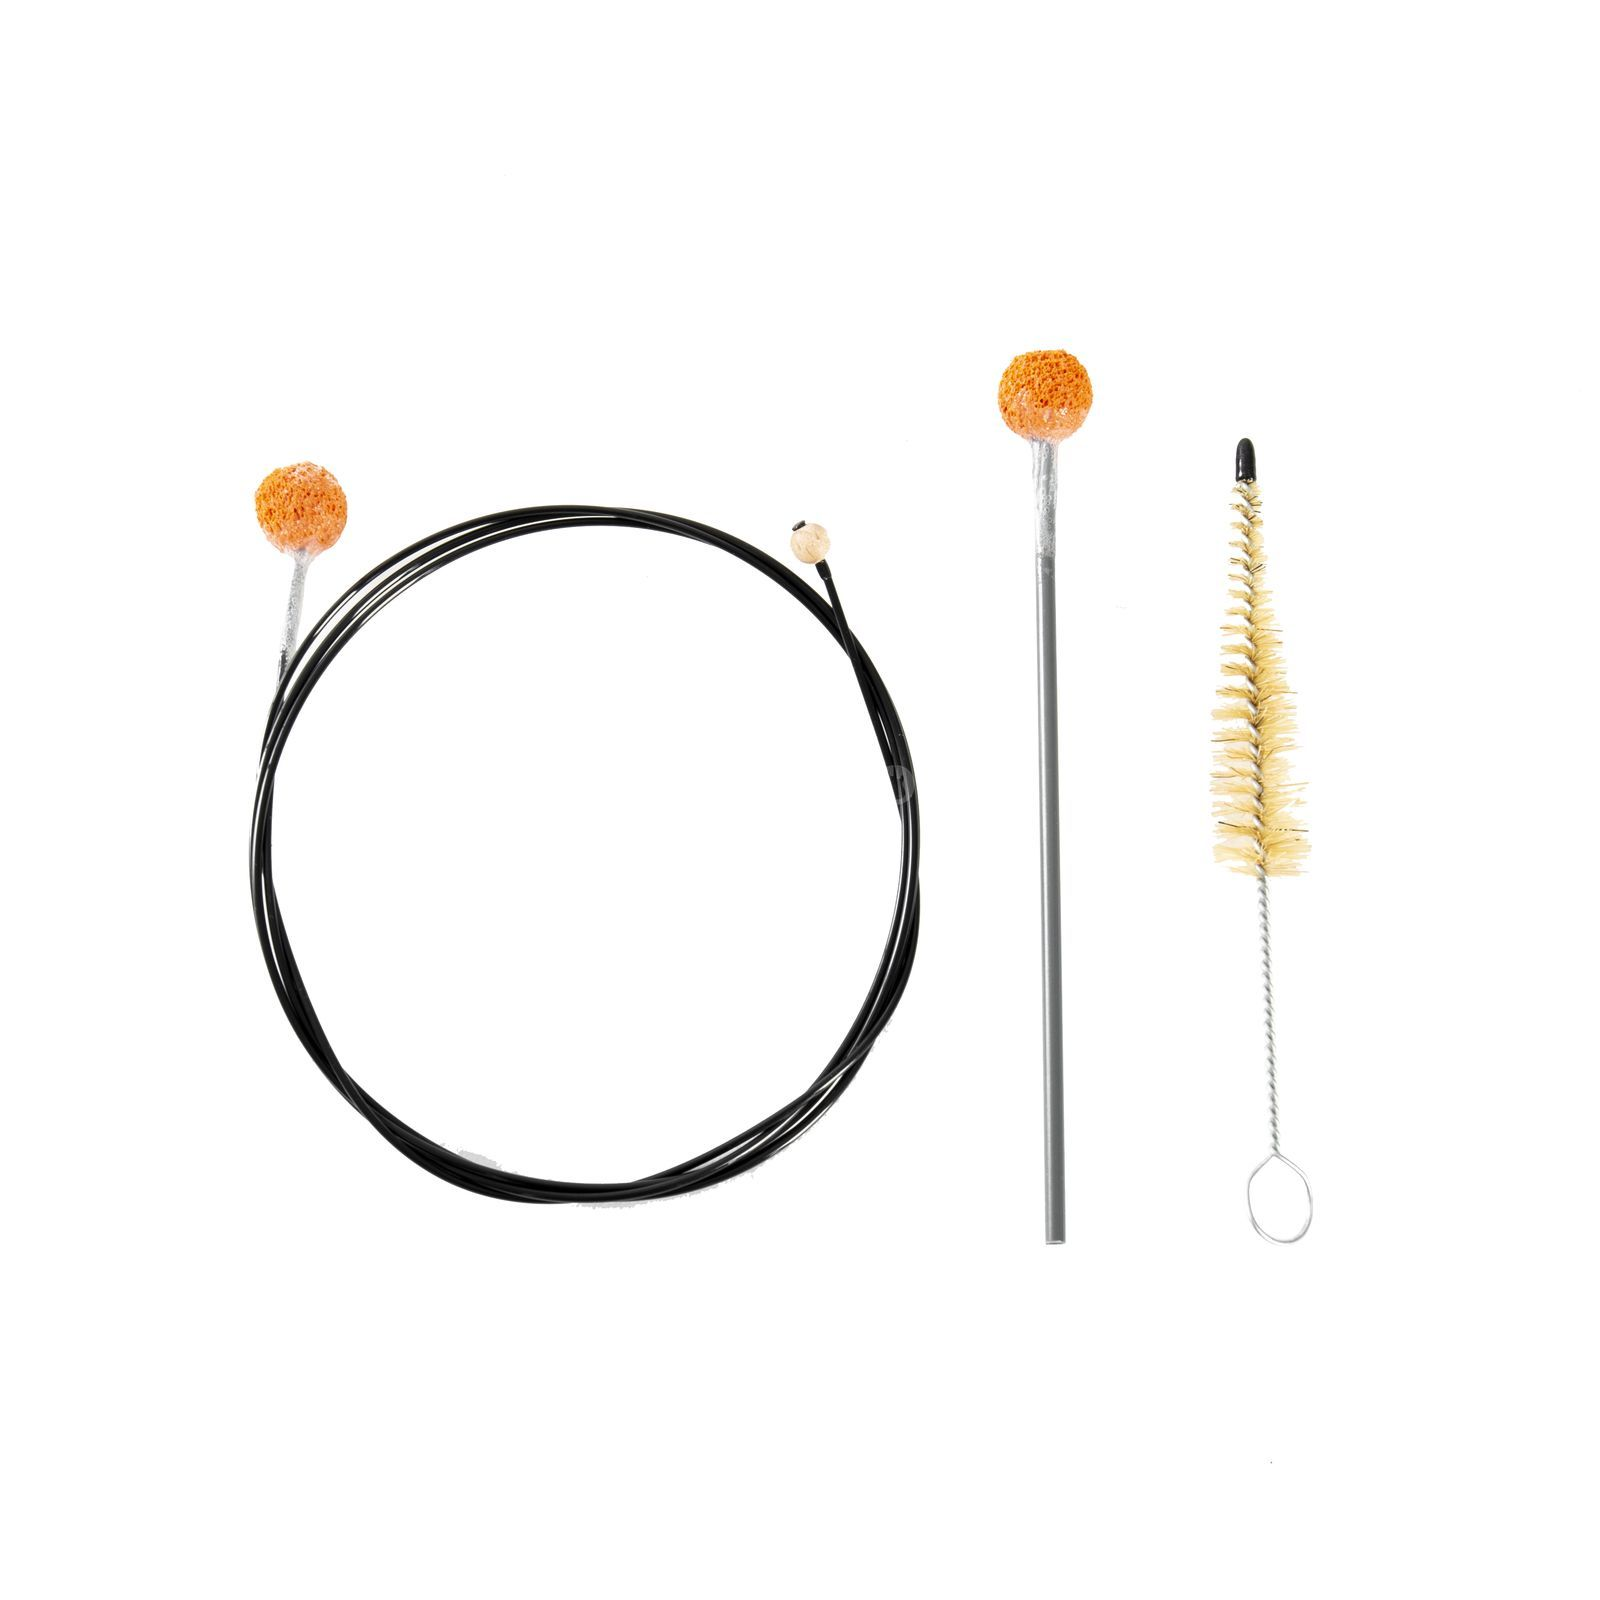 REKA Cleaning Set for French Horn Image du produit